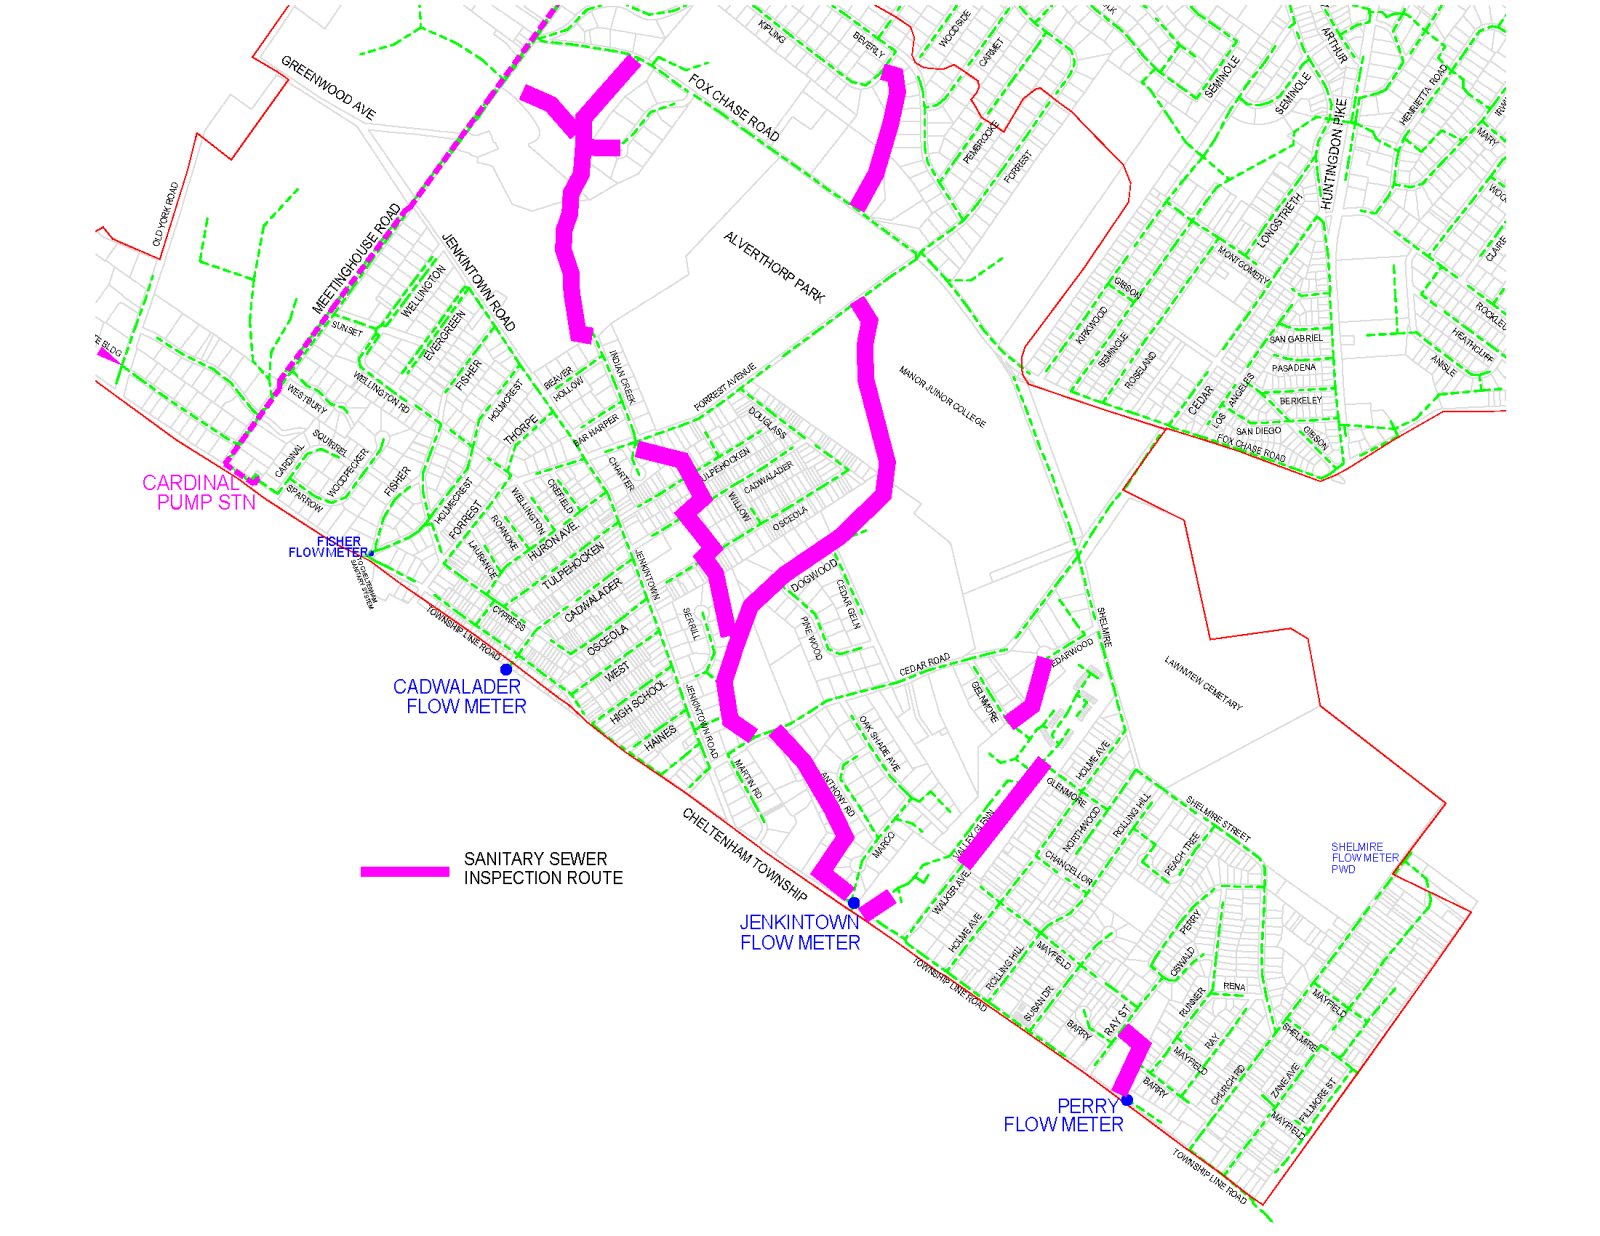 Wastewater Inspection Routes Phase 1